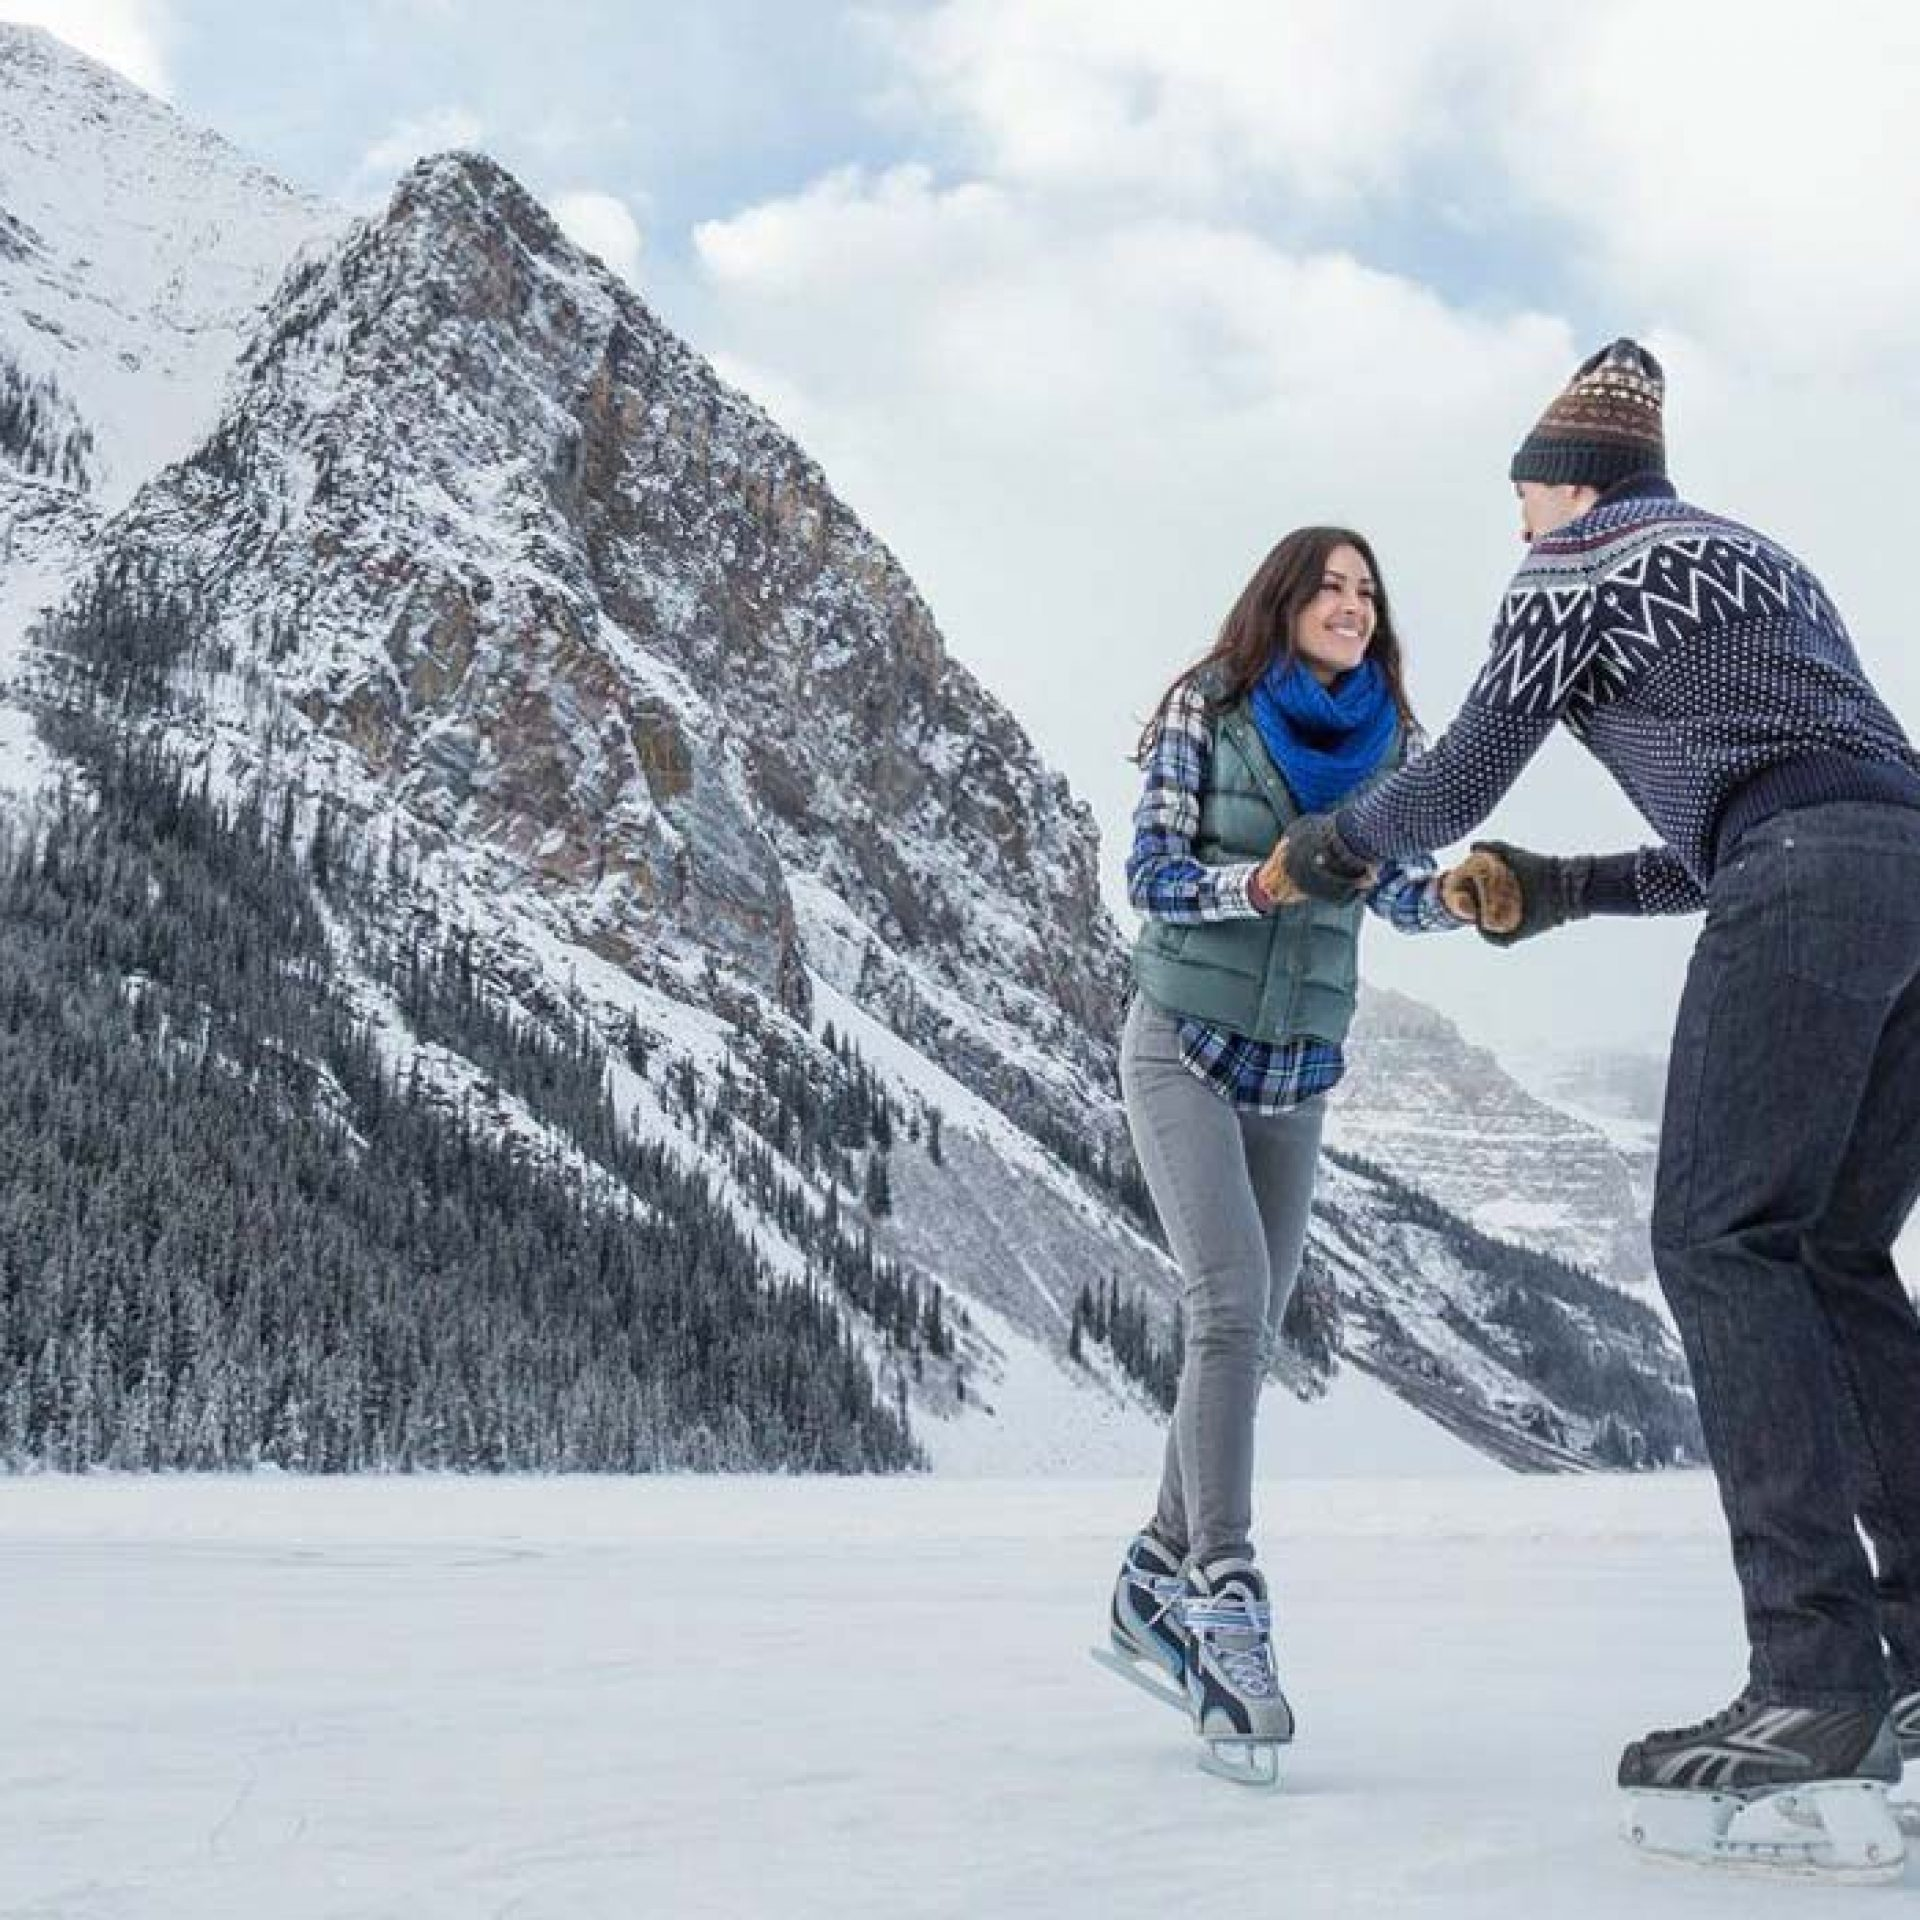 Ice skating on Lake Louise is an experience every couple should add to their bucket list. Photo: Banff & Lake Louise Tourism/Hubert Kang.